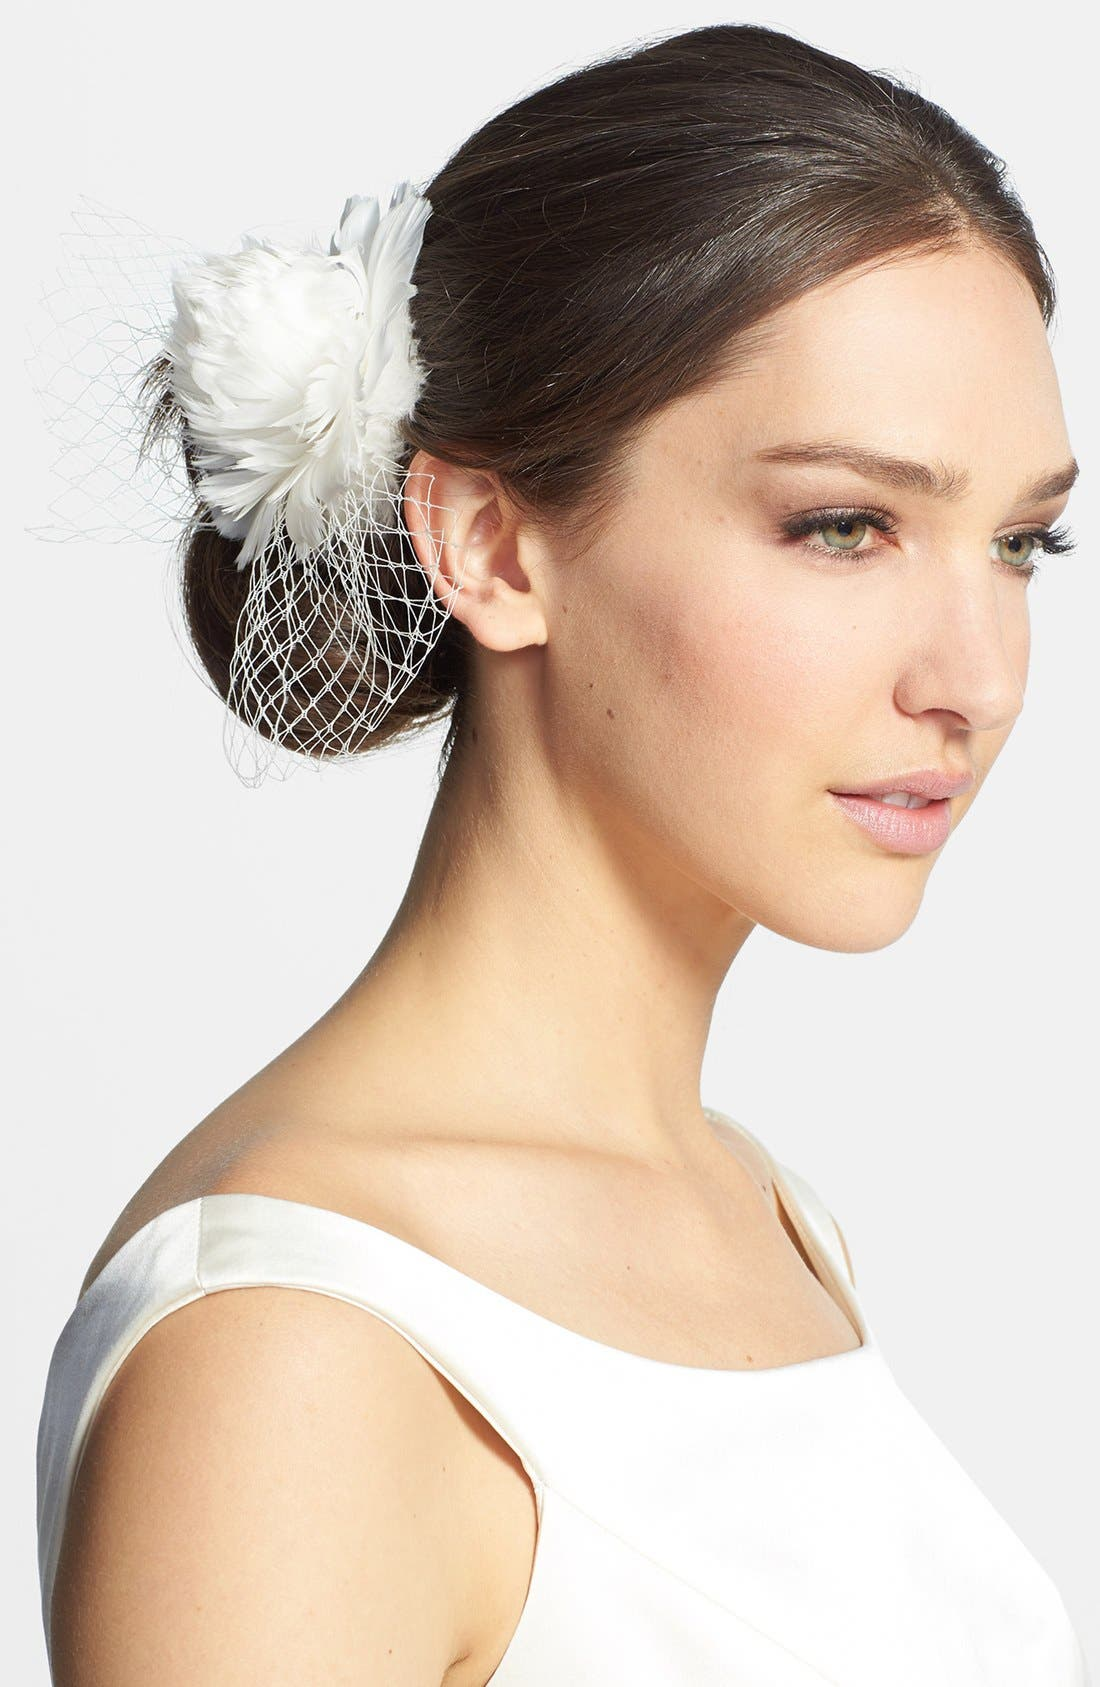 Alternate Image 1 Selected - J-Picone 'Brooklyn' Floral Fascinator